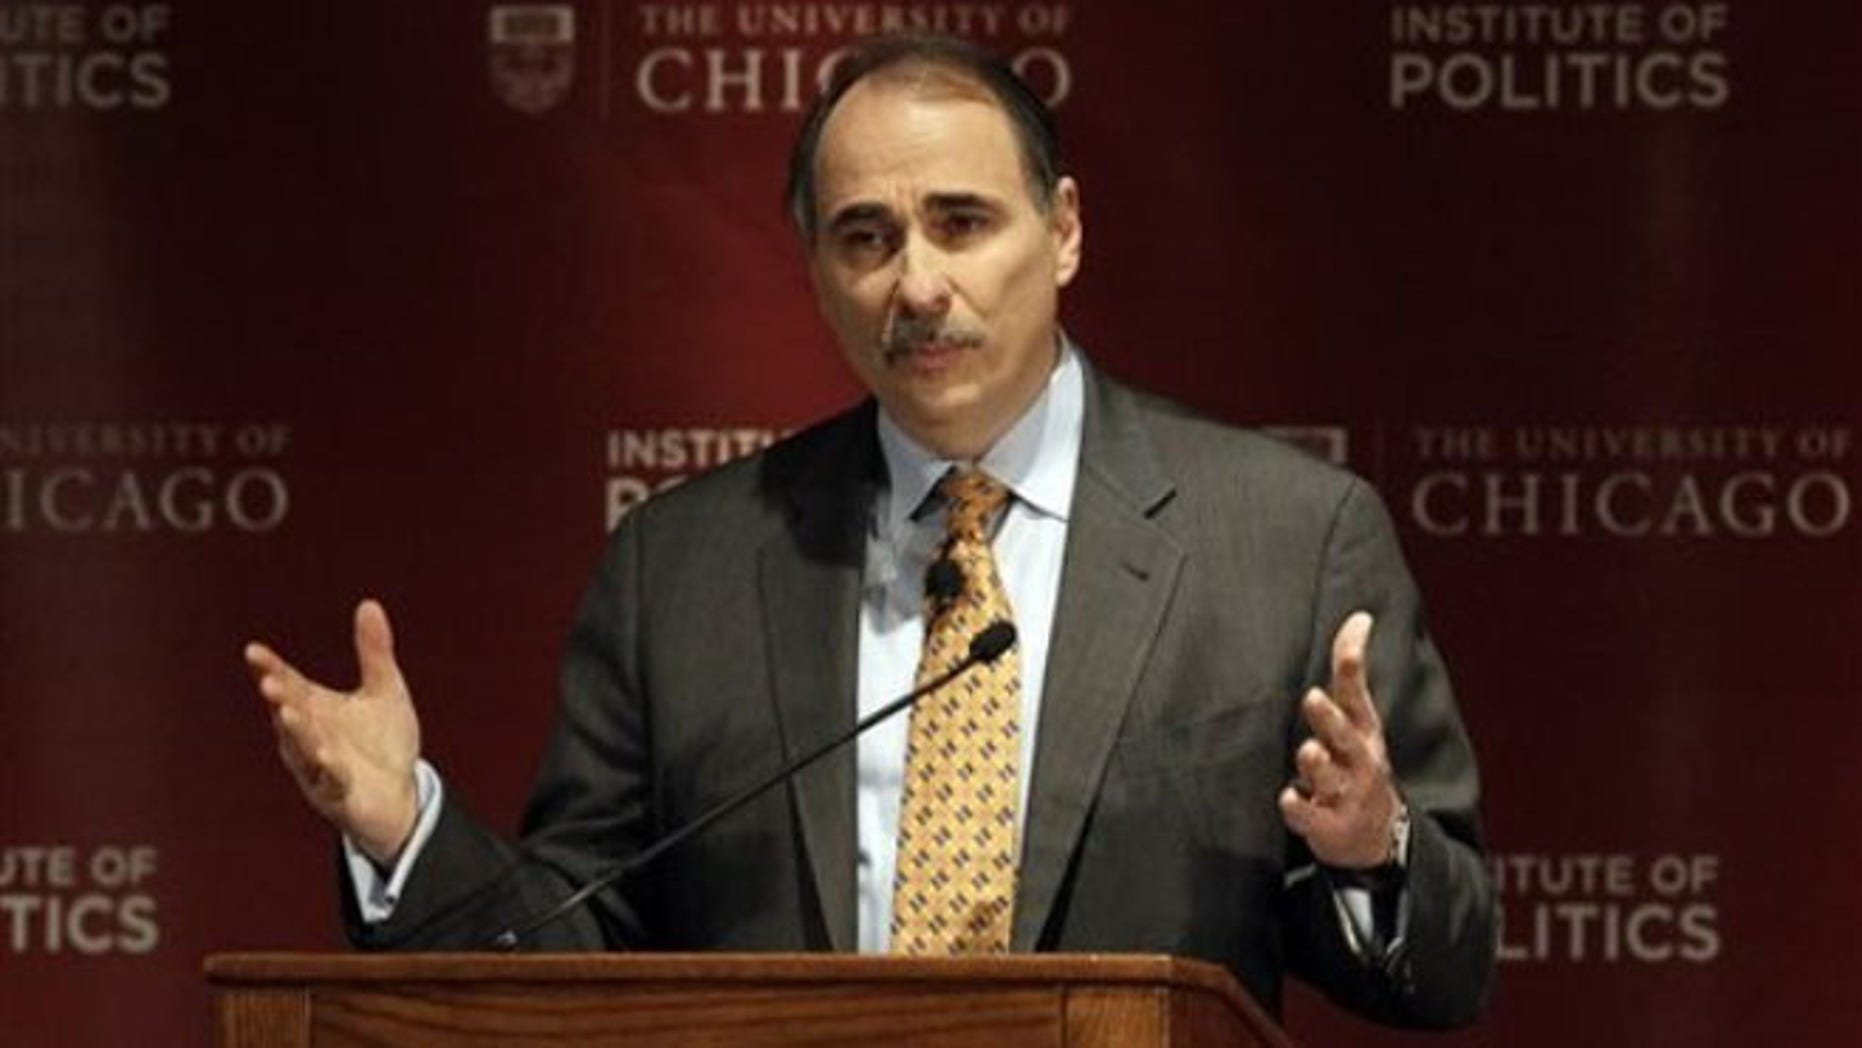 Jan. 19, 2012: David Axelrod, senior adviser to President Obama, speaks during a panel discussion in Chicago.